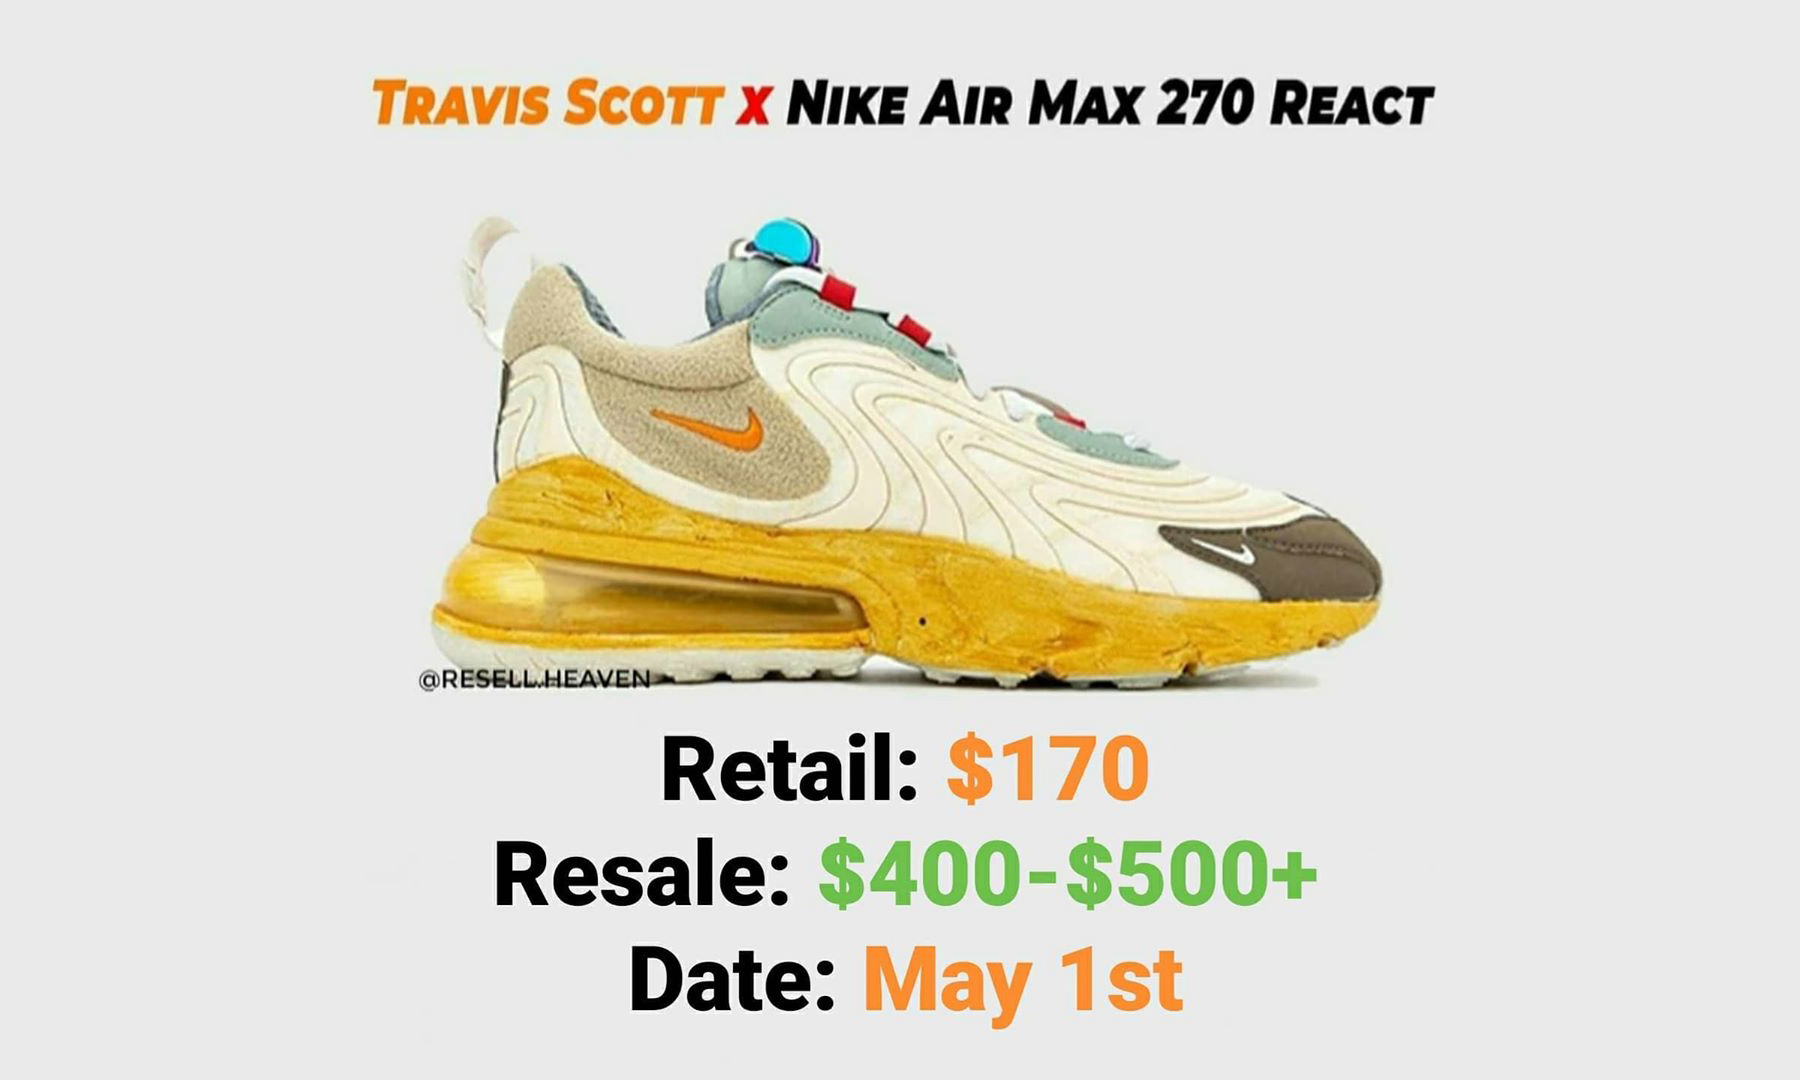 Travis Scott x Nike Air Max 270 React 发售遭延期